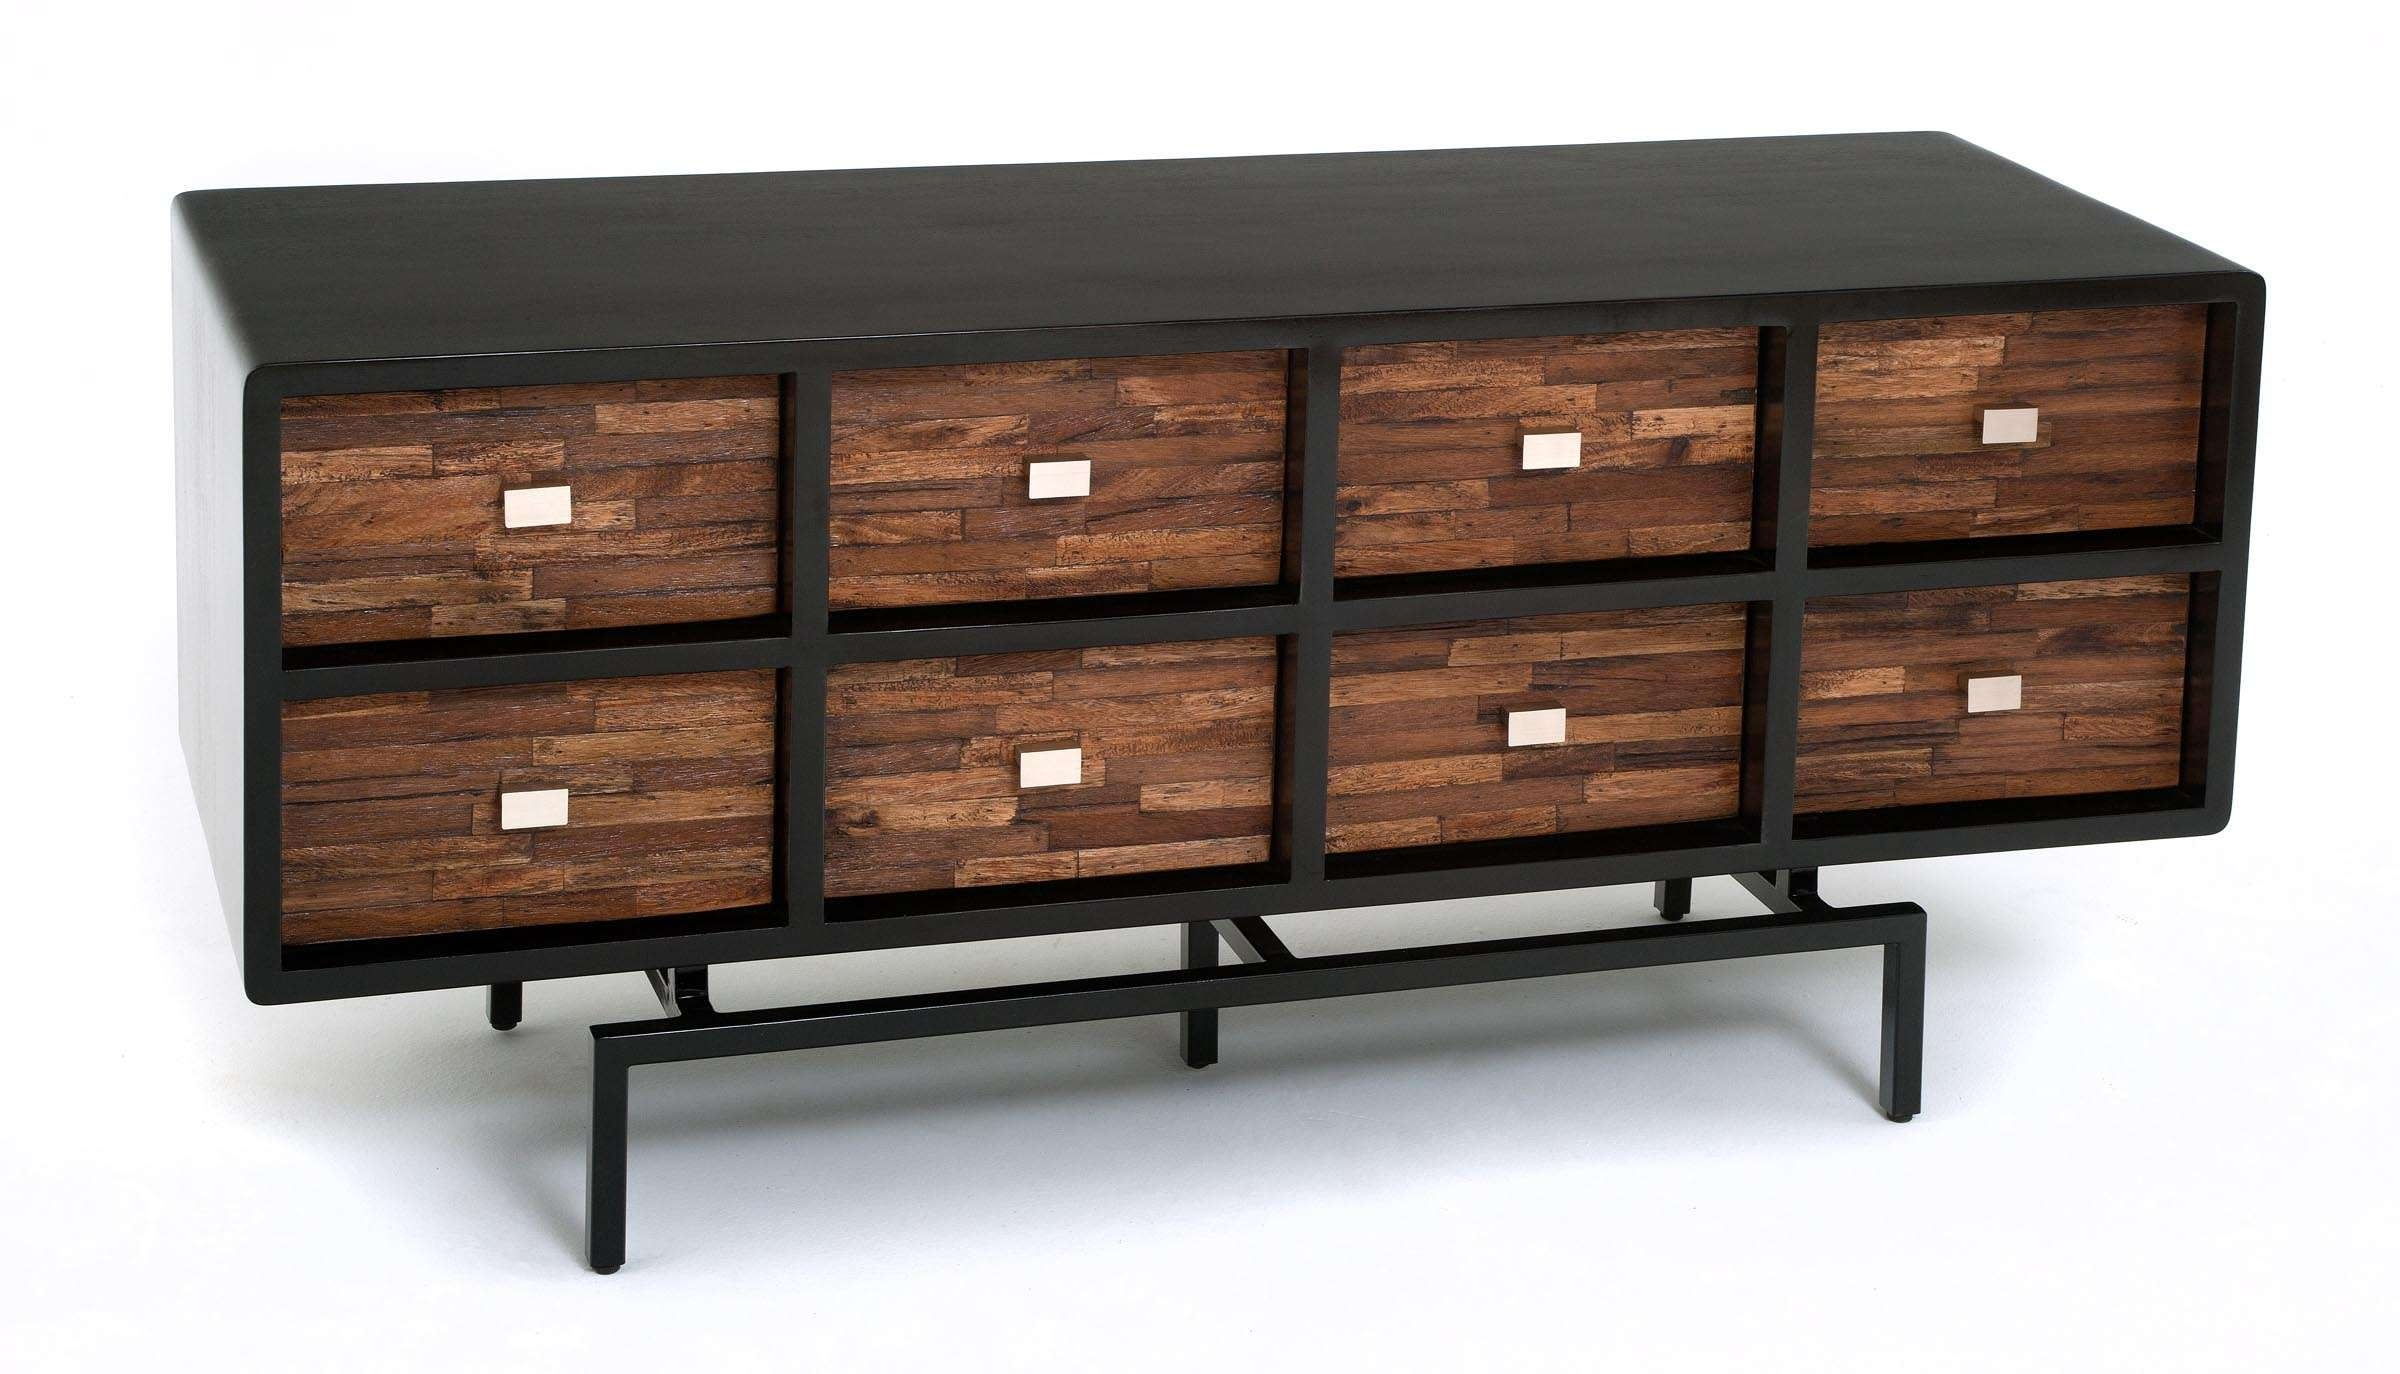 Soft Modern Furniture, Sustainable Sideboard, Reclaimed Wood For Reclaimed Sideboards (View 17 of 20)